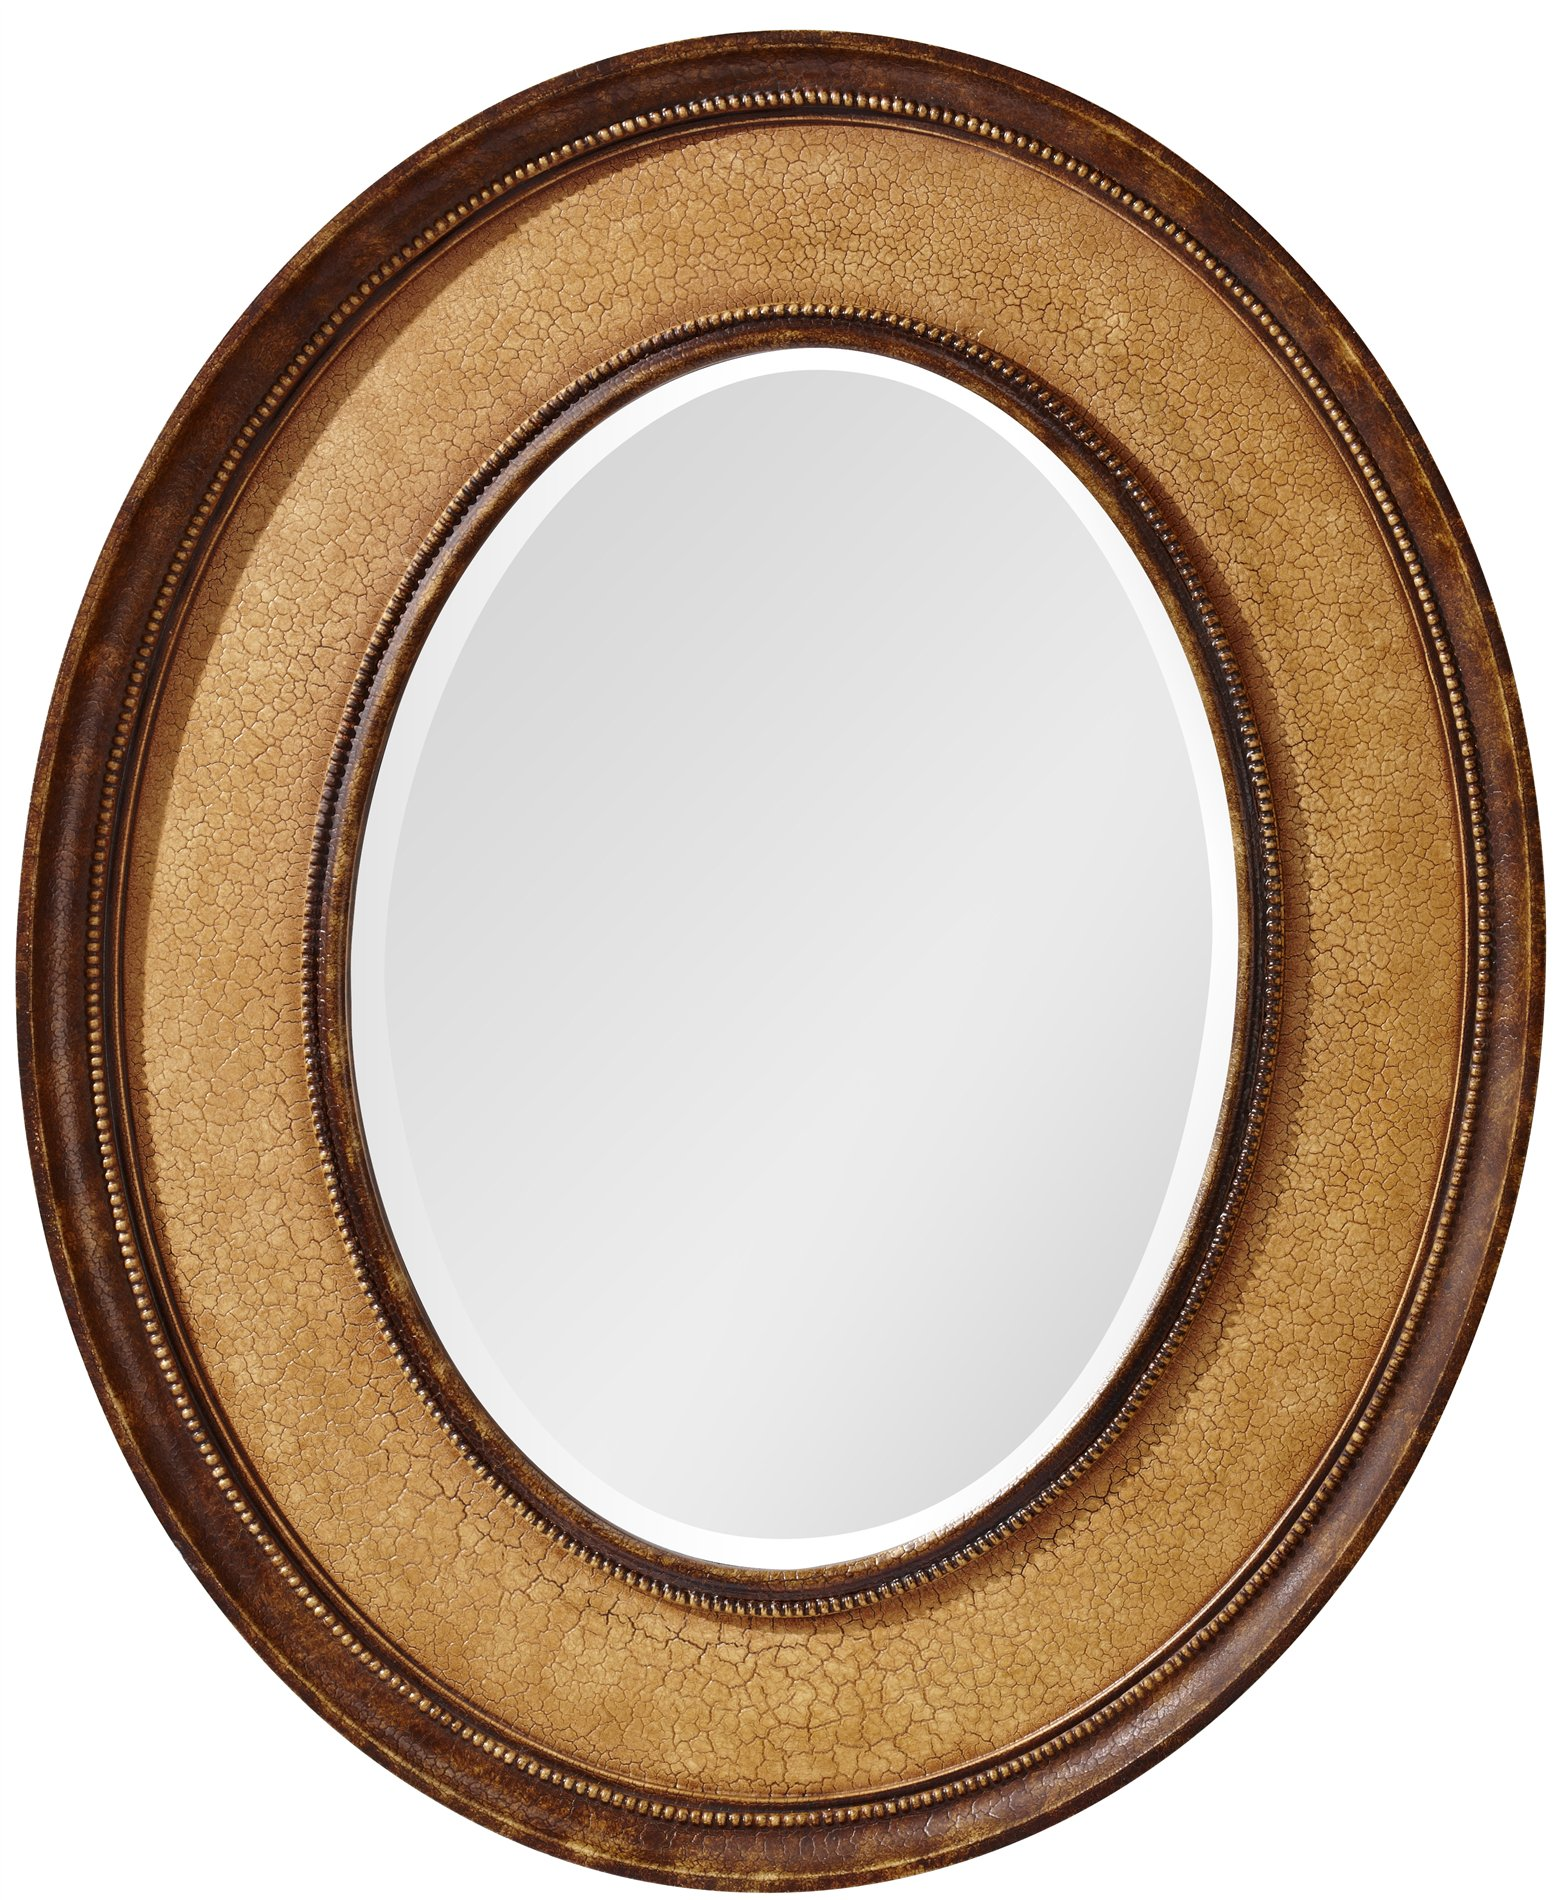 Murray Feiss Mirrors: Murray Feiss MR1135IC Evelyn Transitional Oval Mirror MRF